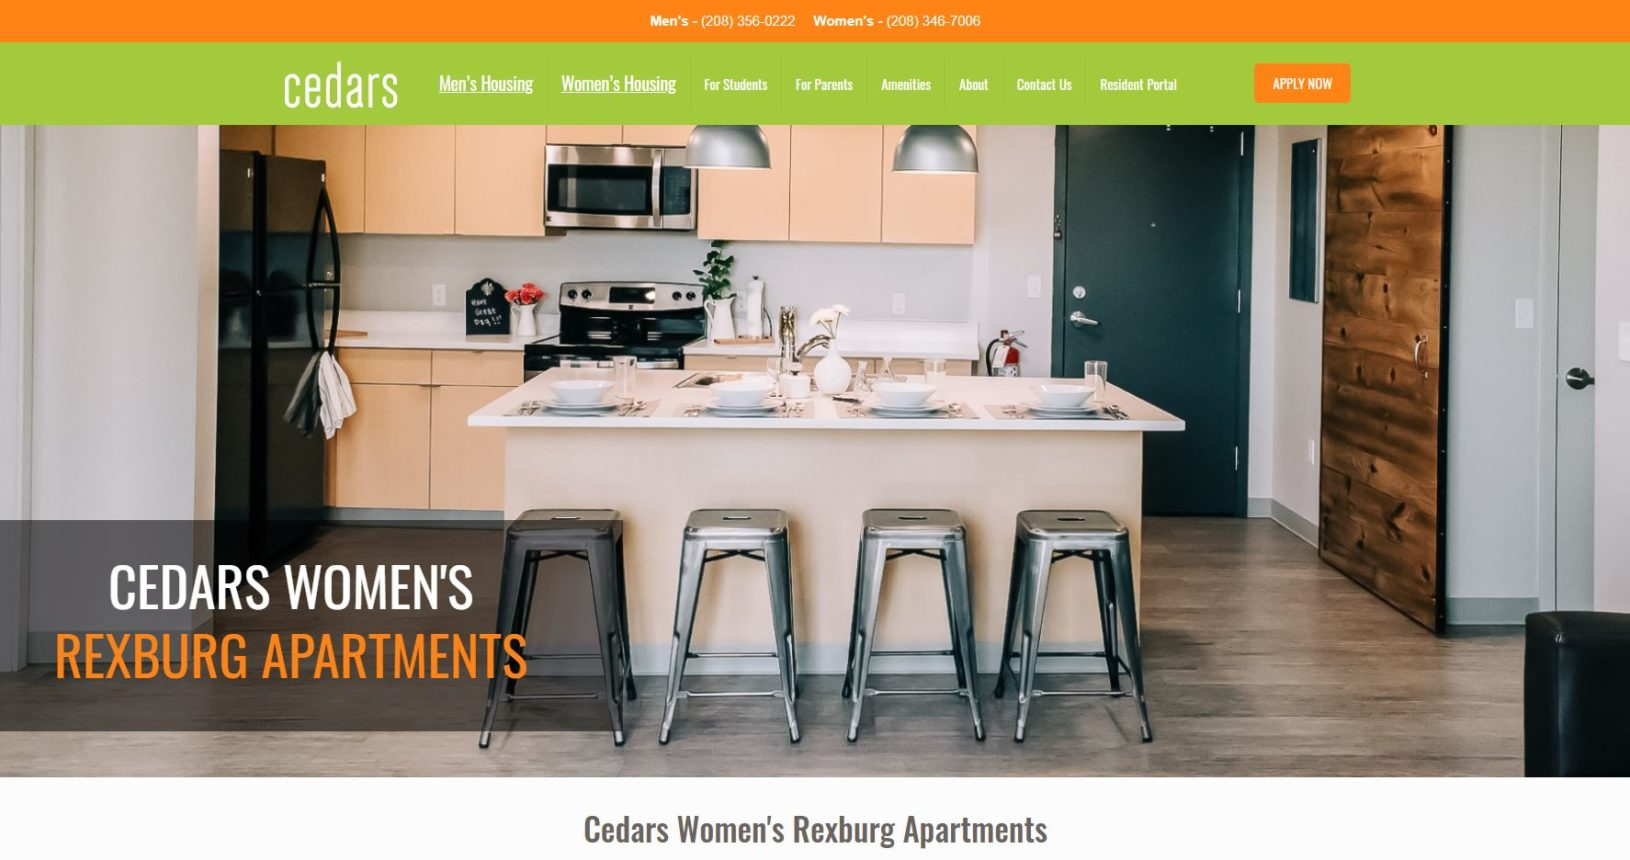 New Womens Landing Page